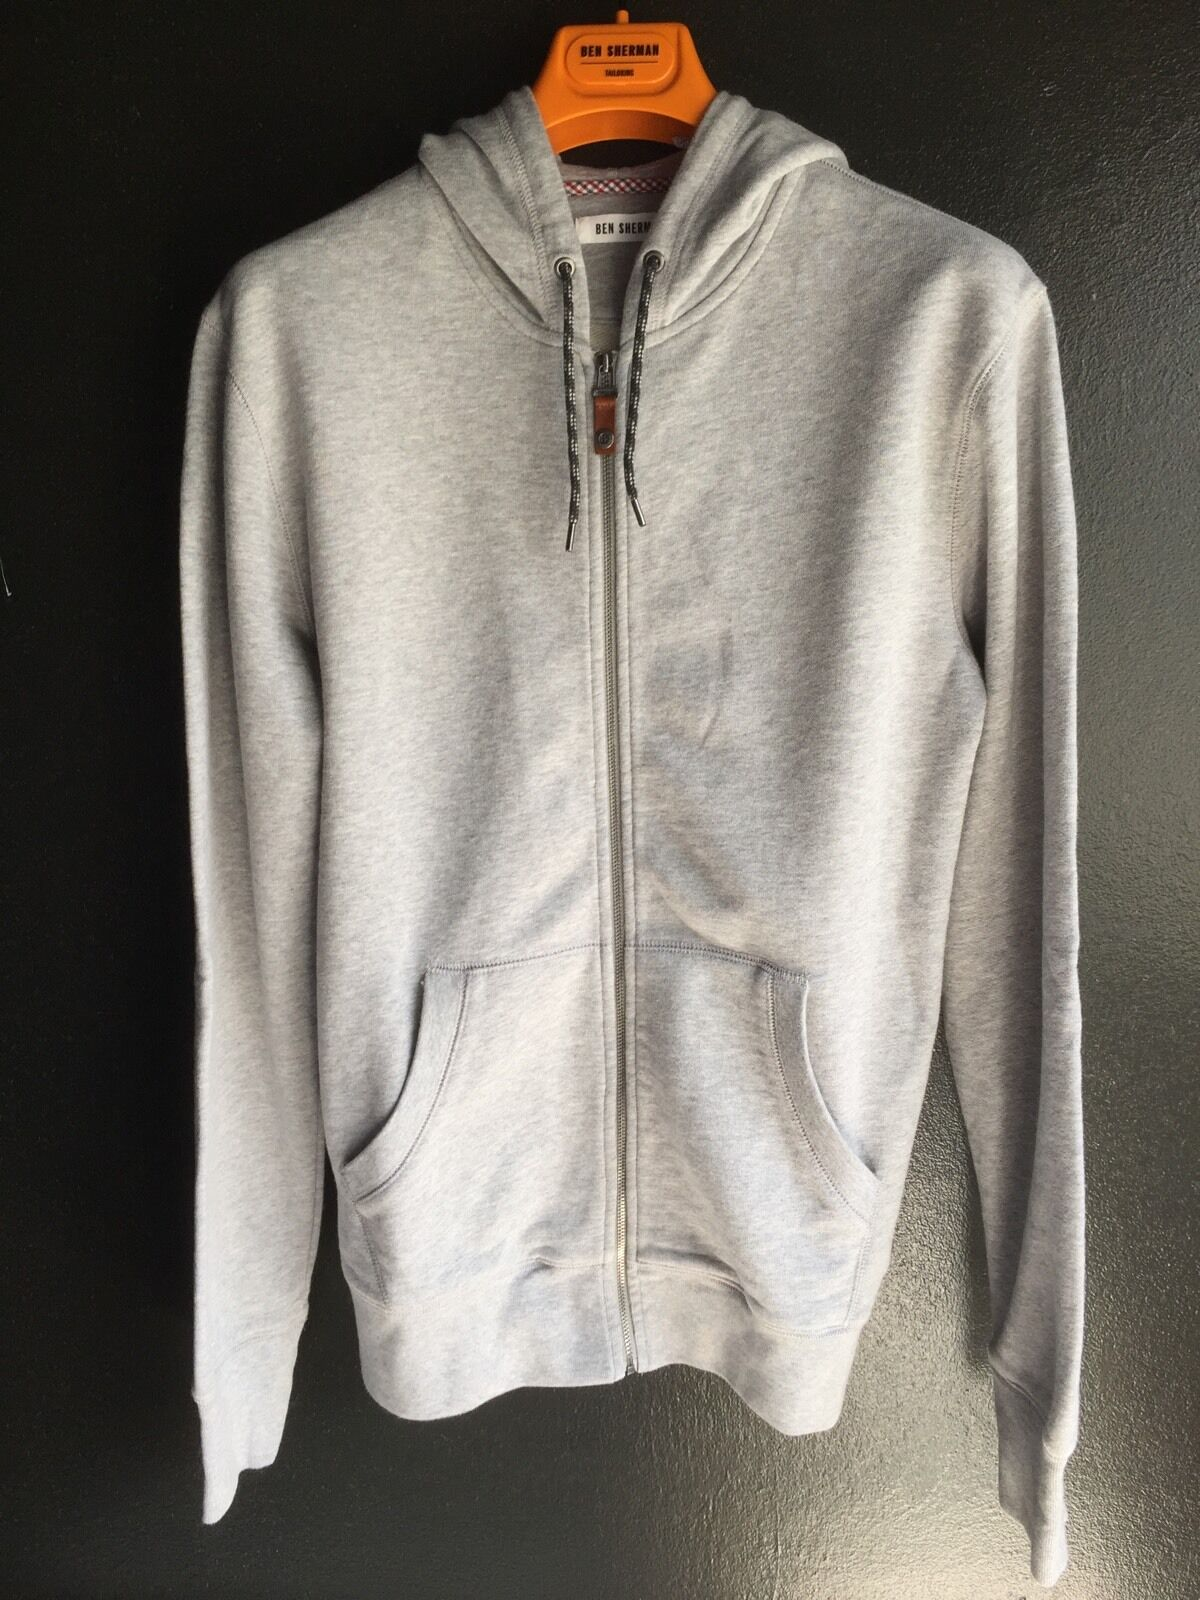 Ben Sherman Cotton Hoodies, Heather Grey, S